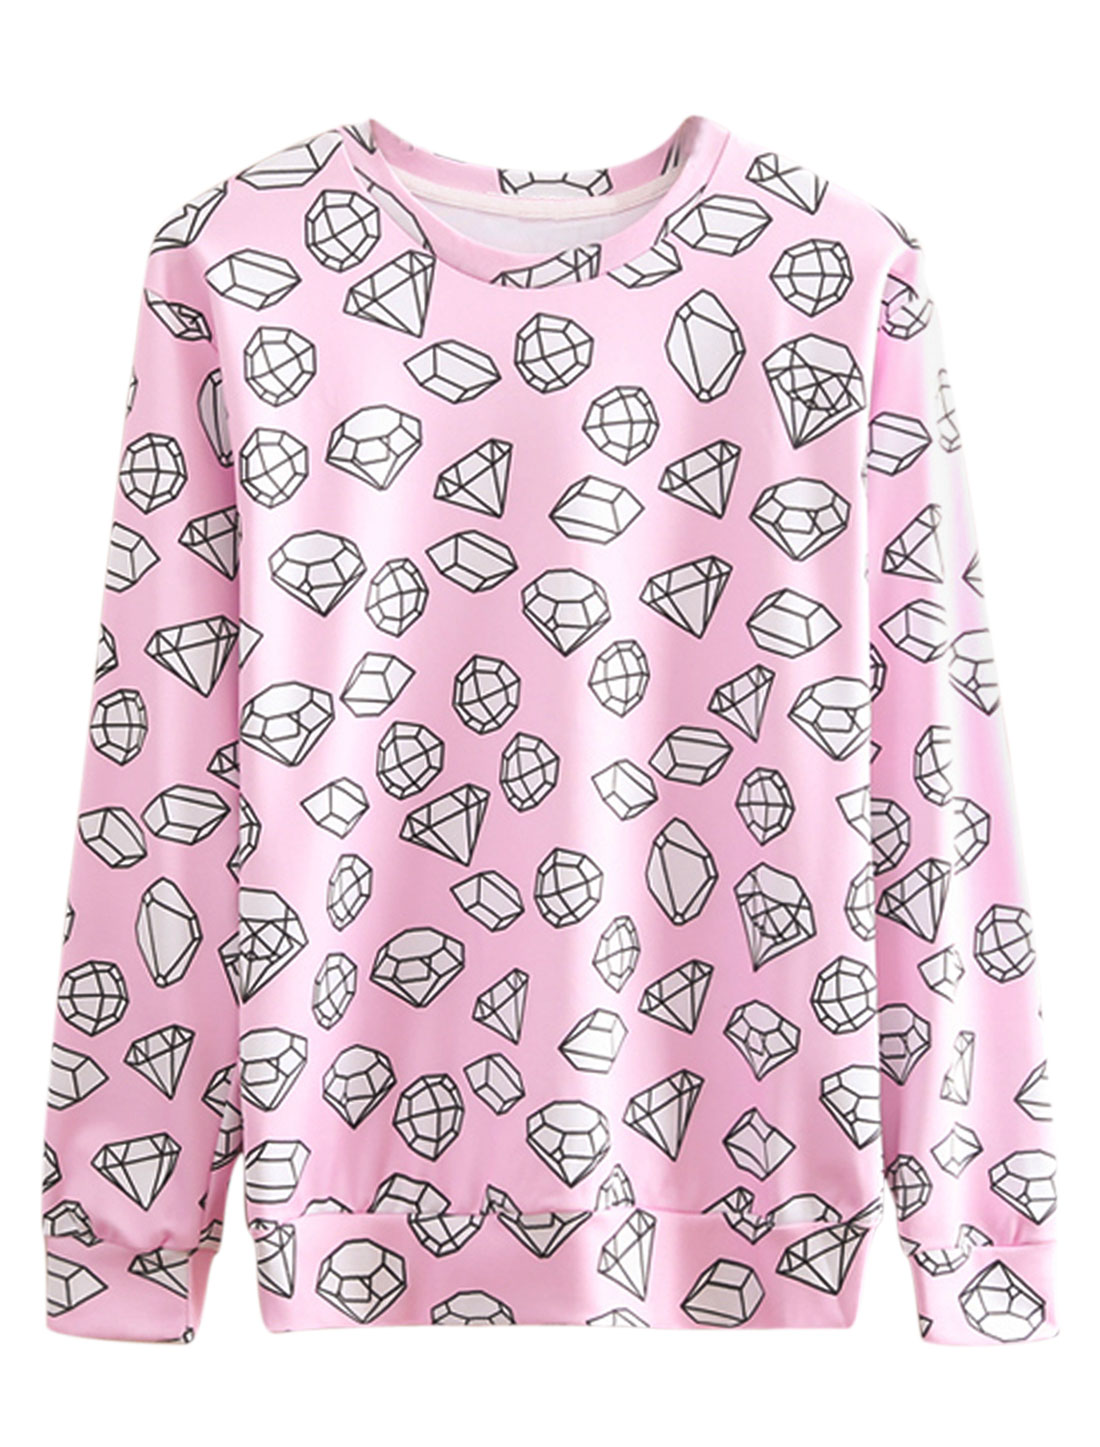 Men Round Neck Long Sleeves Diamond Prints Stylish Sweatshirt Pink M